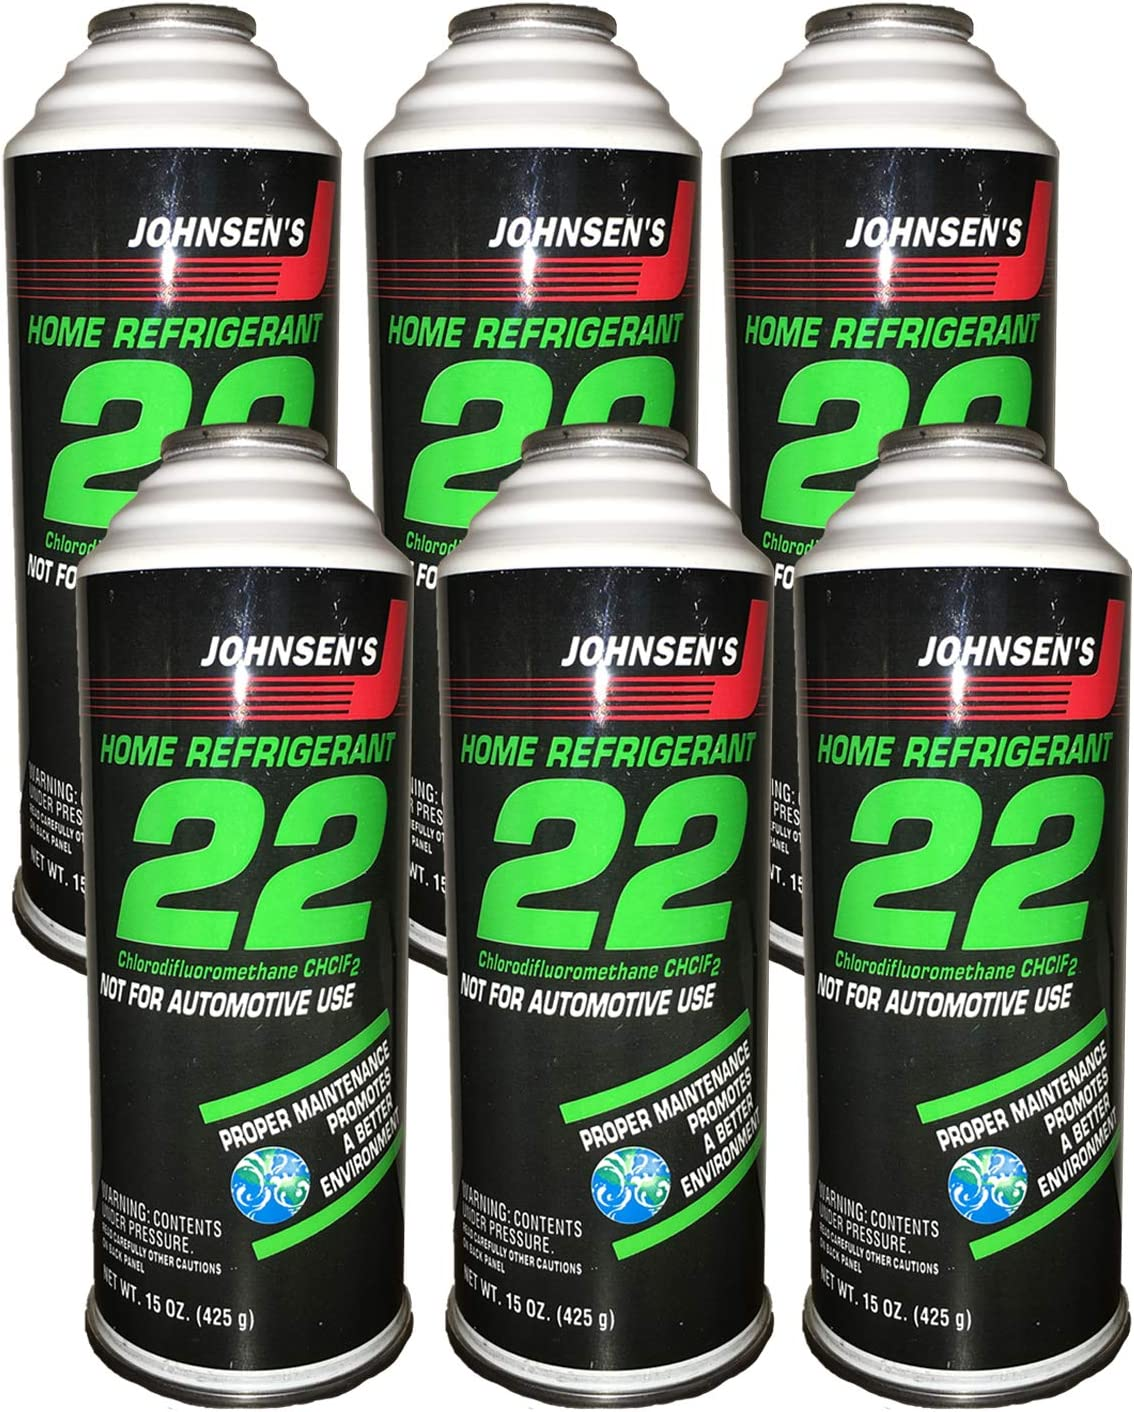 DiY Parts R22_ Refrigerant_ for Home AC Units use in 15 oz Puncture Style Containers (Qty of 6), Made in USA